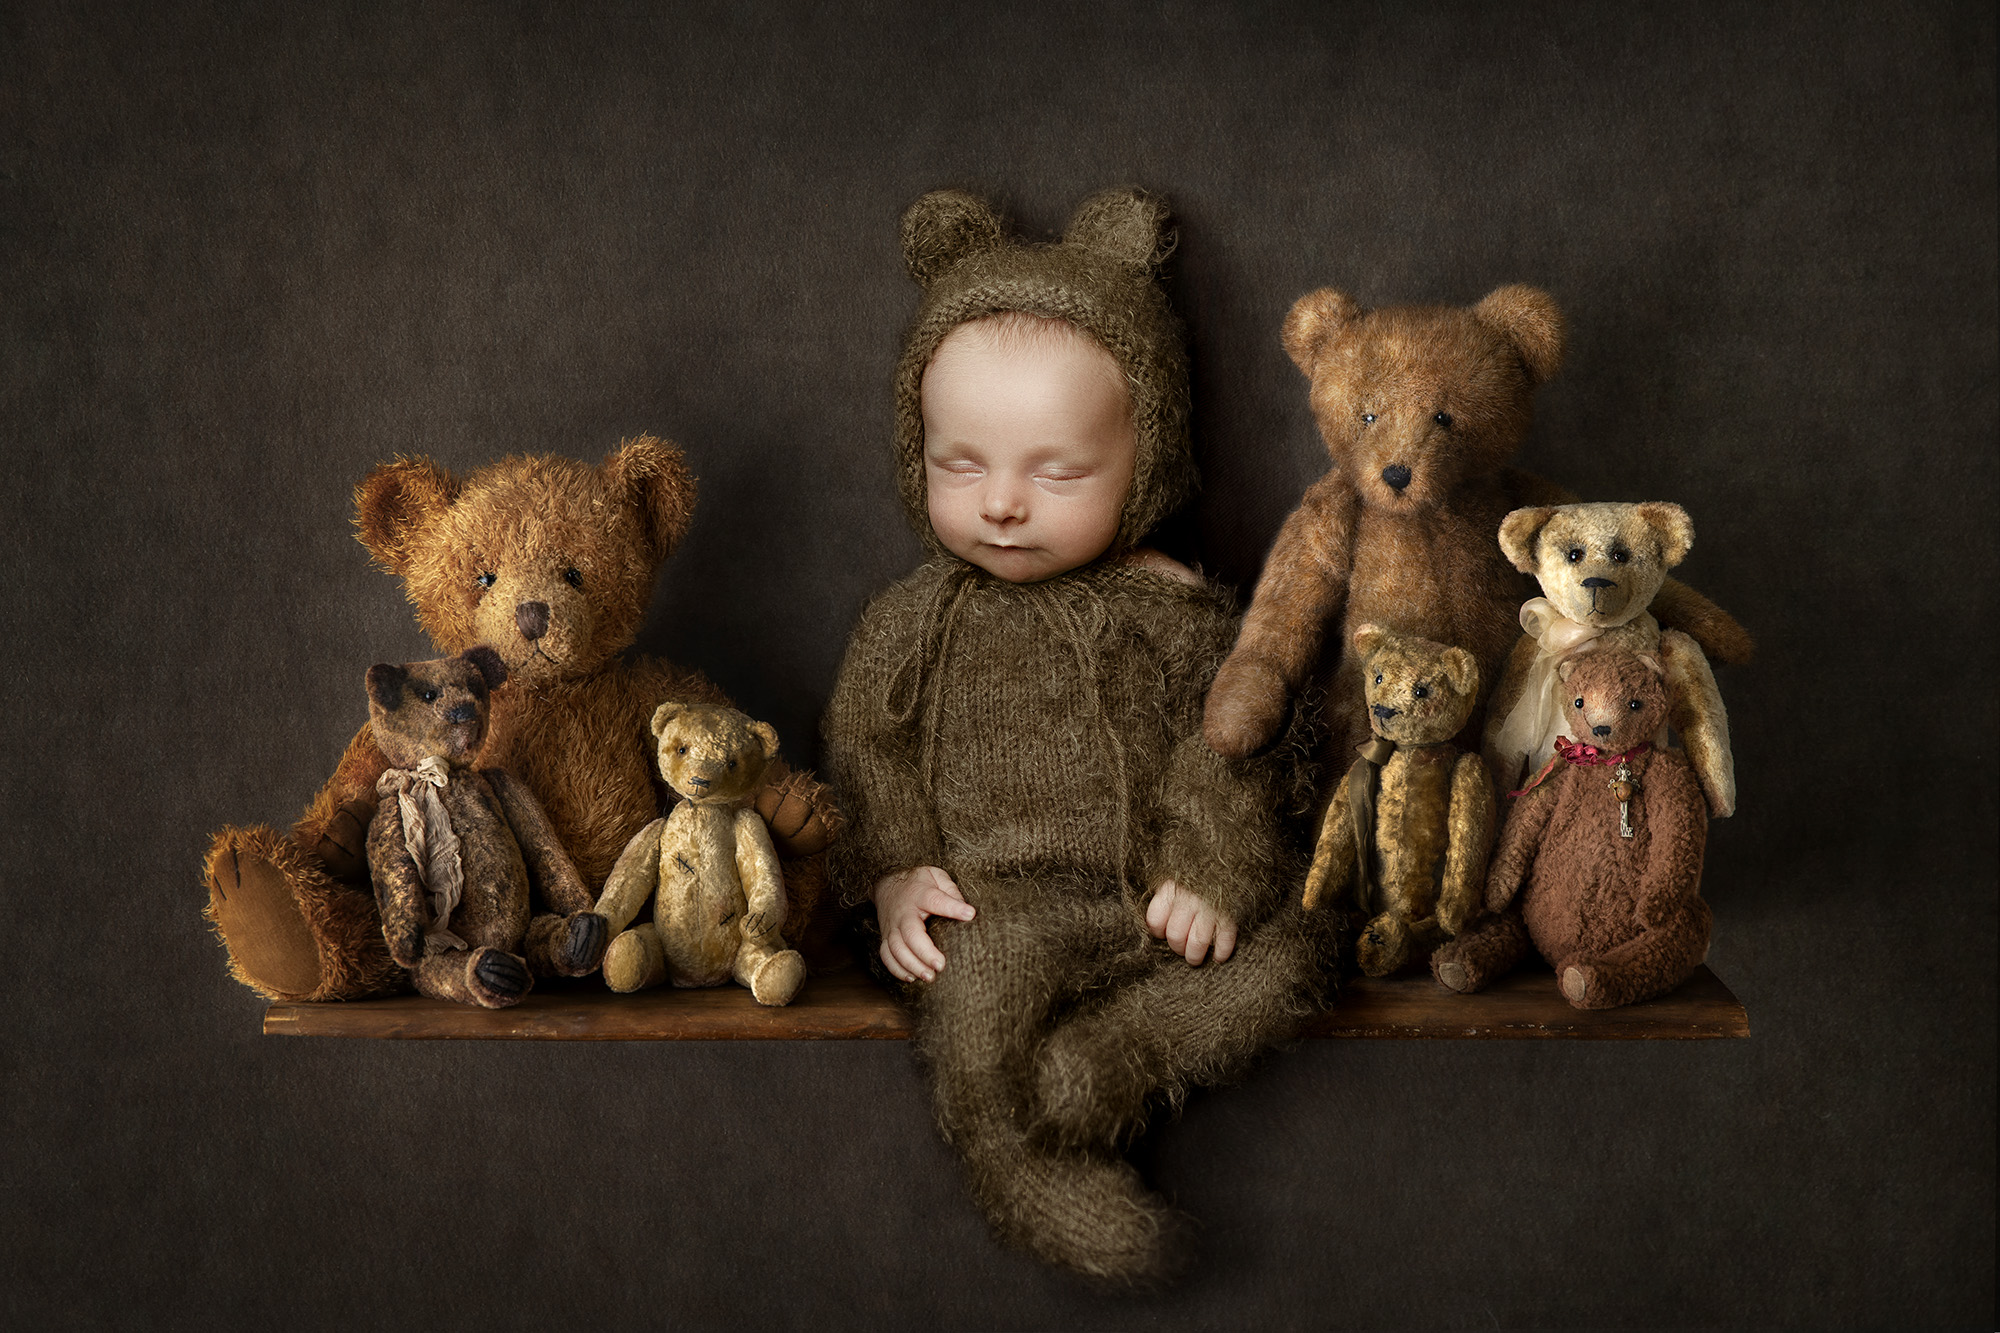 teddy shelf composite editing course lesson teaching online maddy rogers